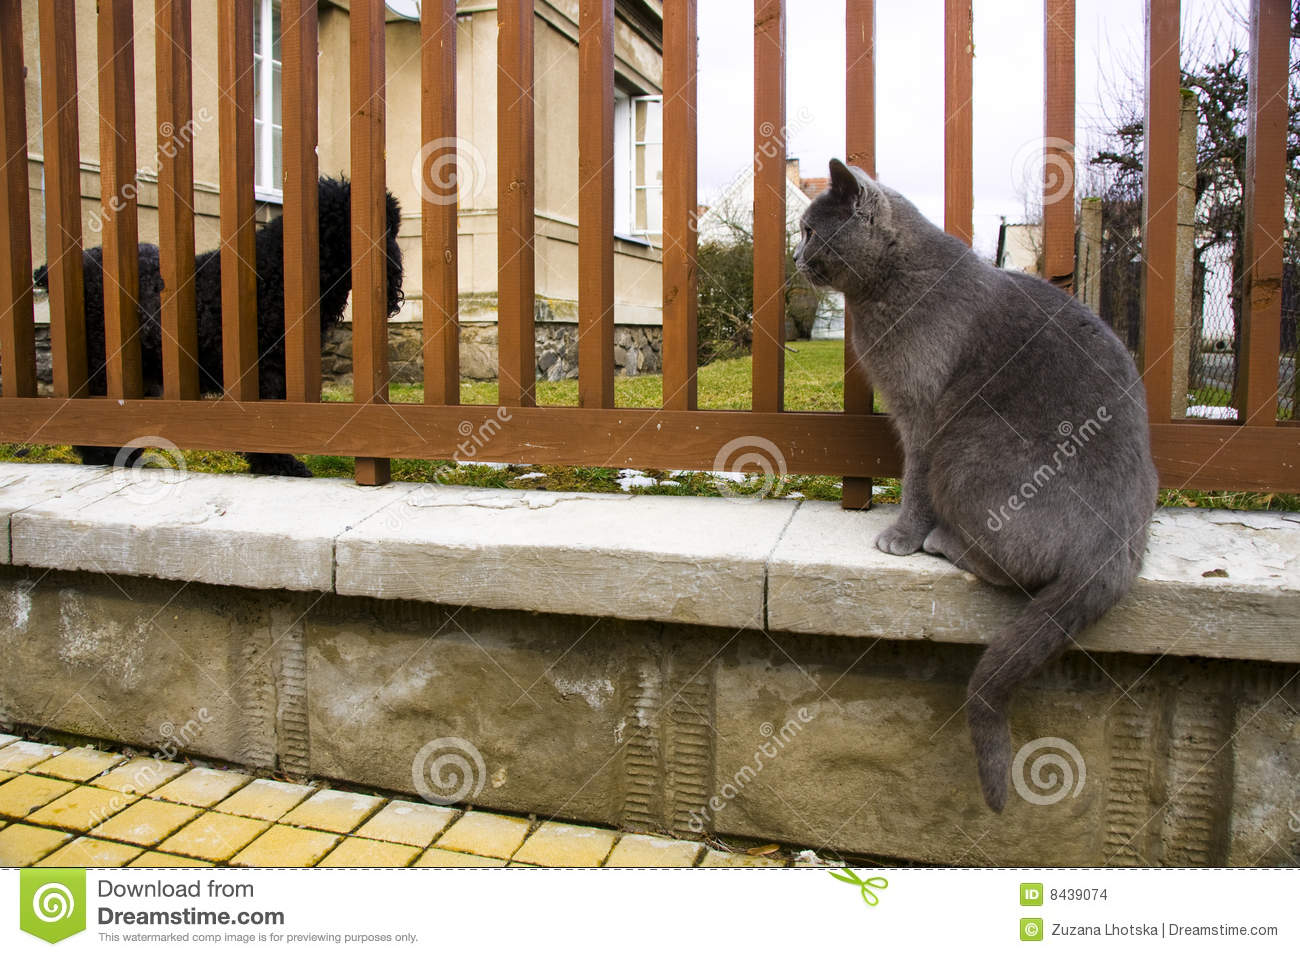 Cat looking at a dog behind a fence